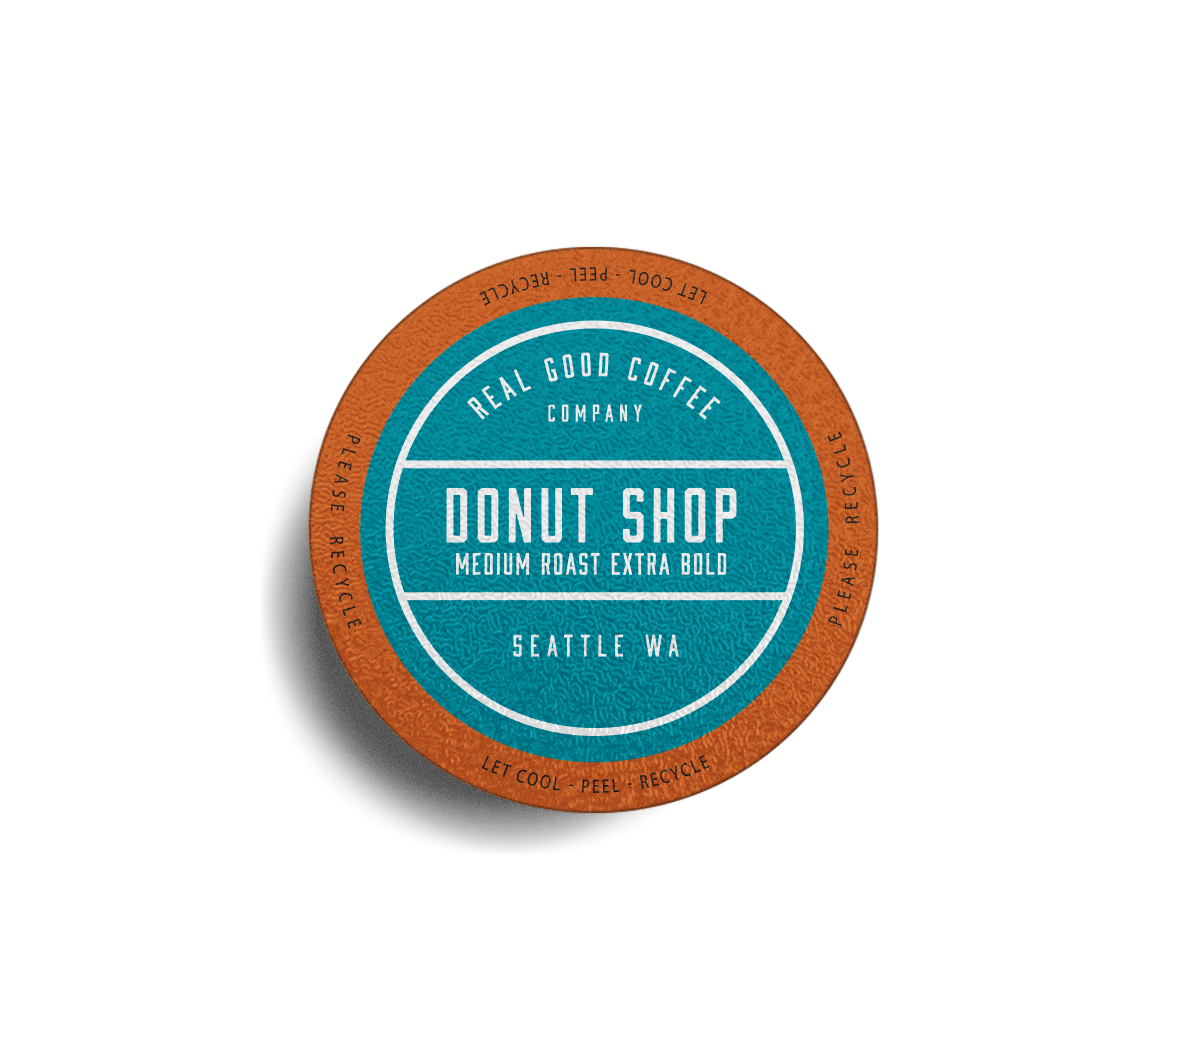 Donut Shop coffee k cups, medium roast coffee k cups, medium roast k cups